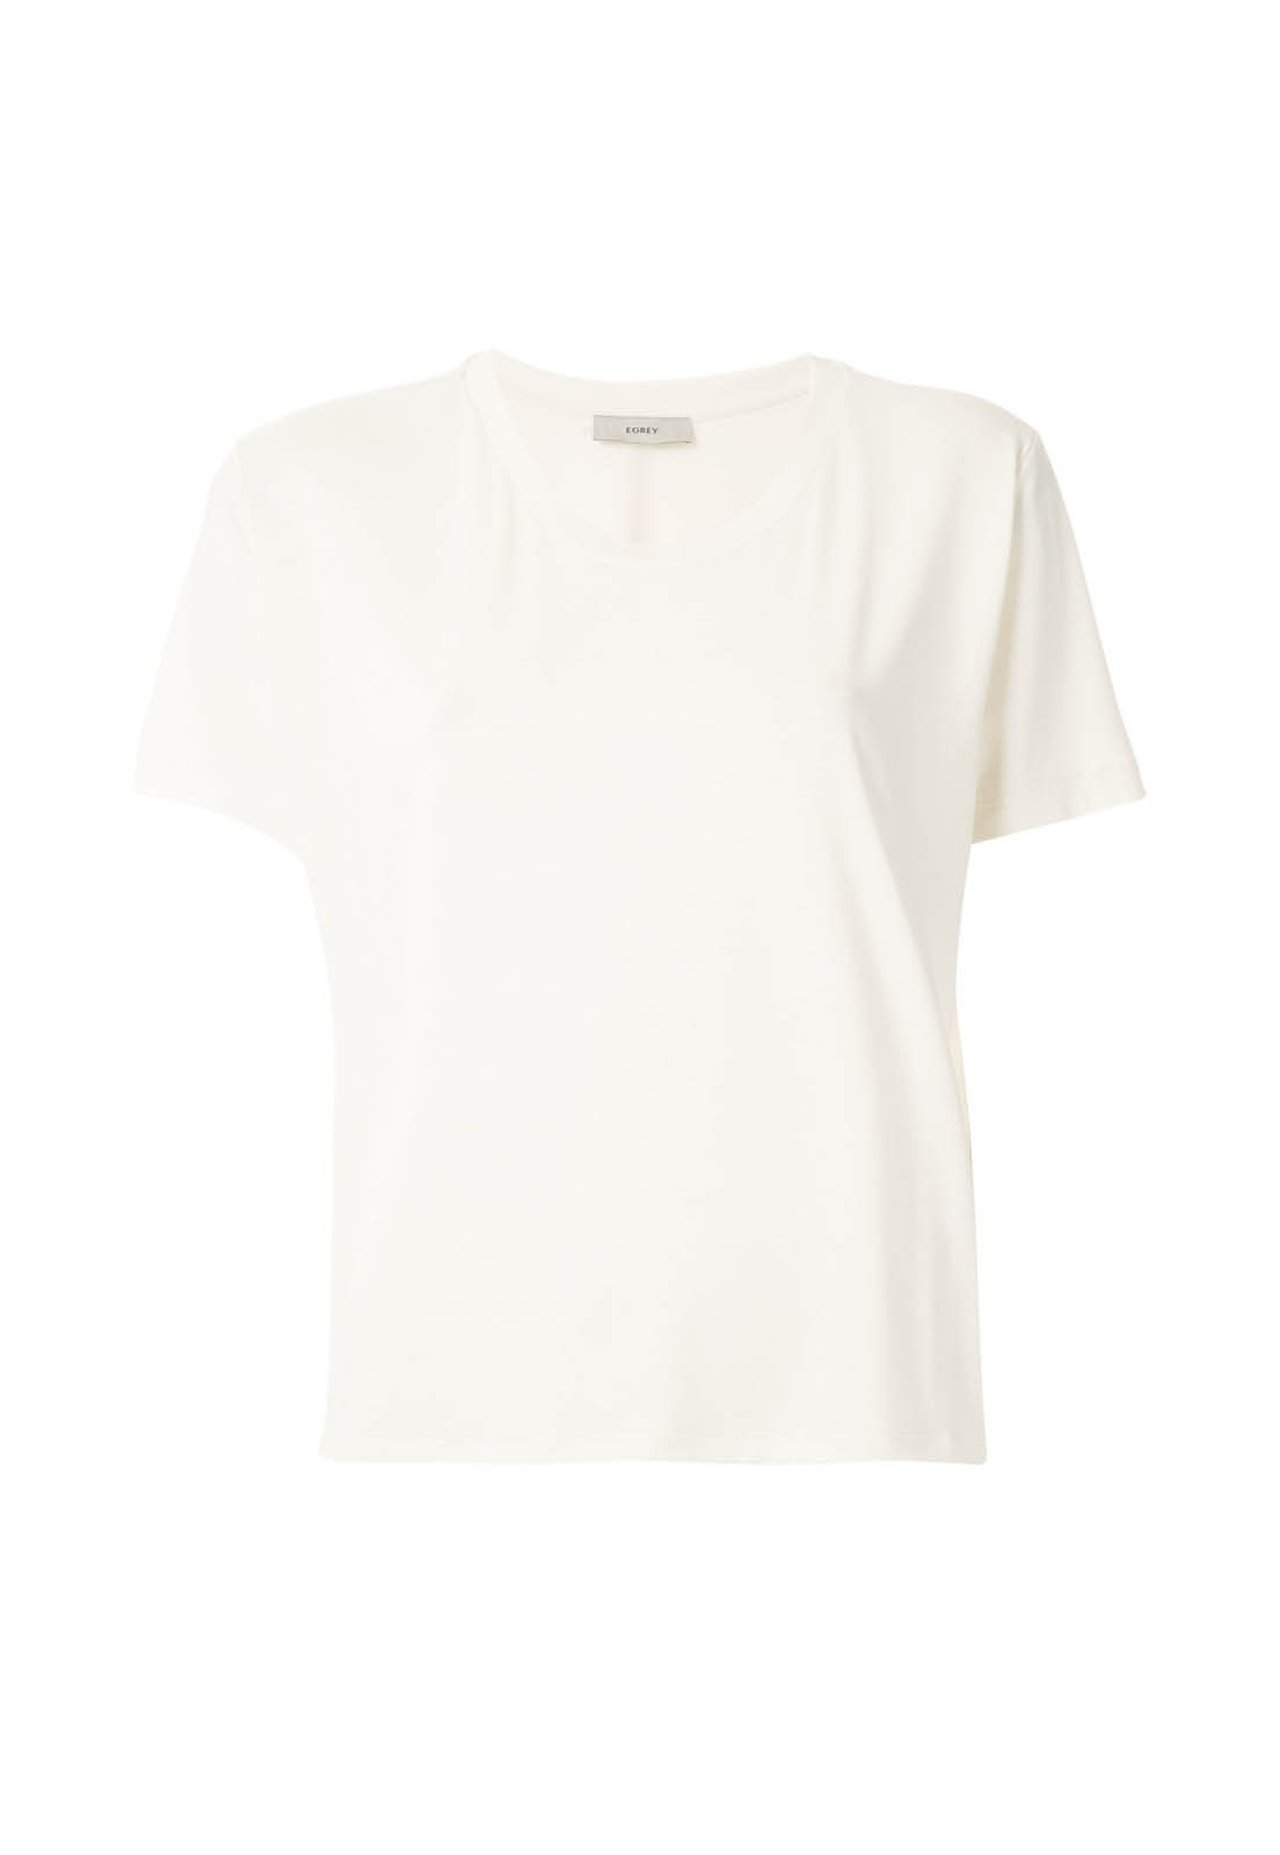 T-shirt Drica Decote Careca